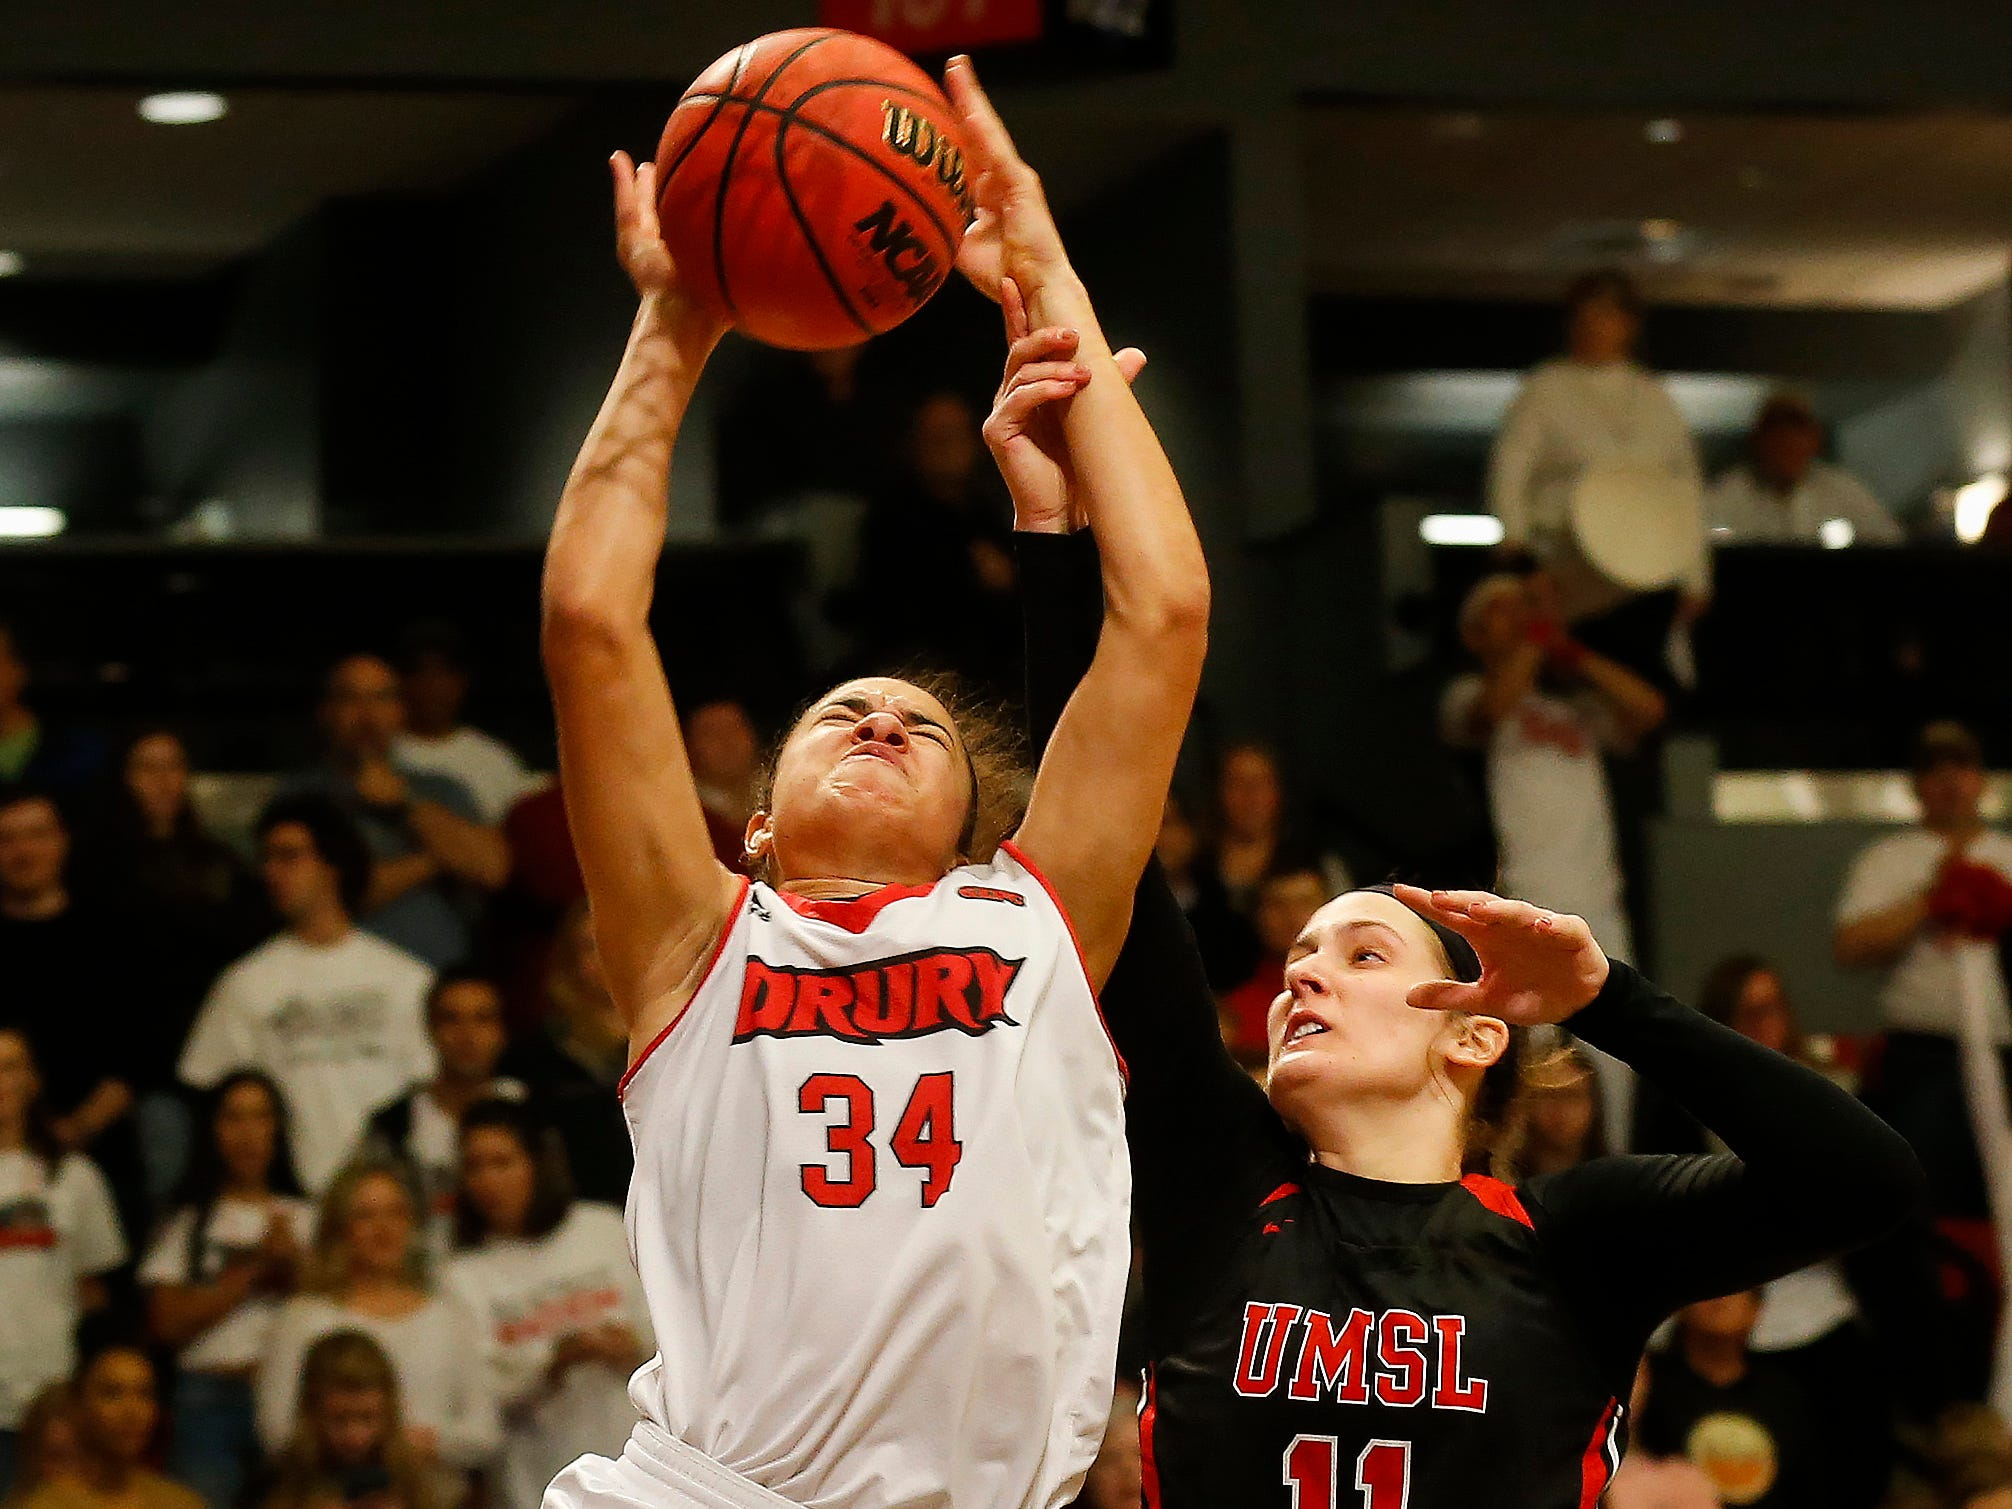 Hailey Diestelkamp, of Drury, is fouled by Alex LaPorta, of the University of Missouri St. Louis, during the Lady Panthers' 77-44 win over the Tritons  during the Overflow the O game at the O'Reilly Family Event Center on Saturday, Feb. 9, 2019.